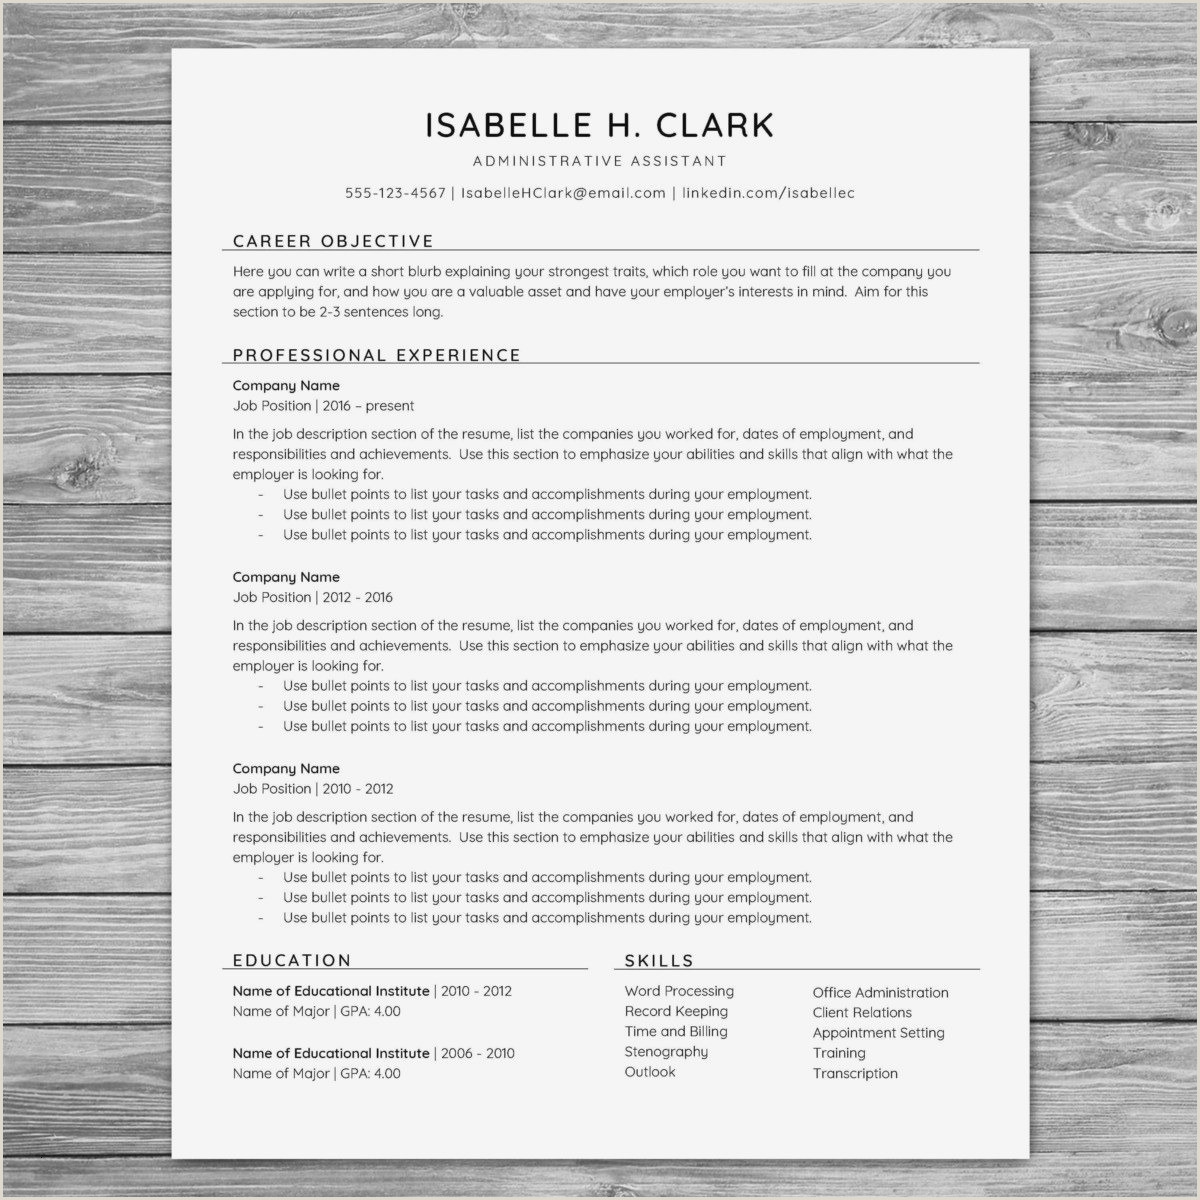 Example A Brief Cover Letter Awesome Cover Letters for